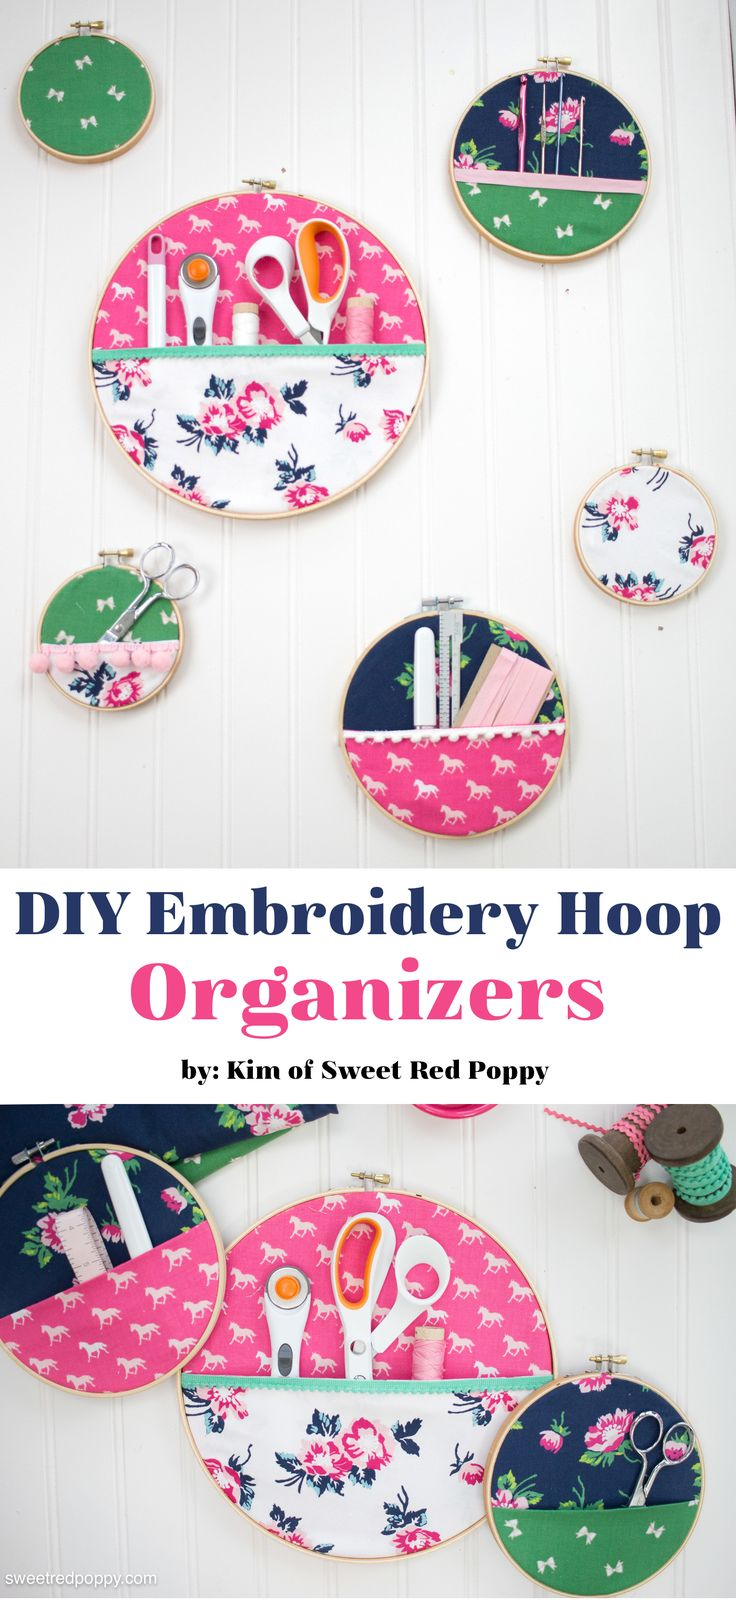 DIY Embroidery Hoop Hanging Wall Organizer - a great idea for Sewing Room organization and storage and a clever DIY organization project!